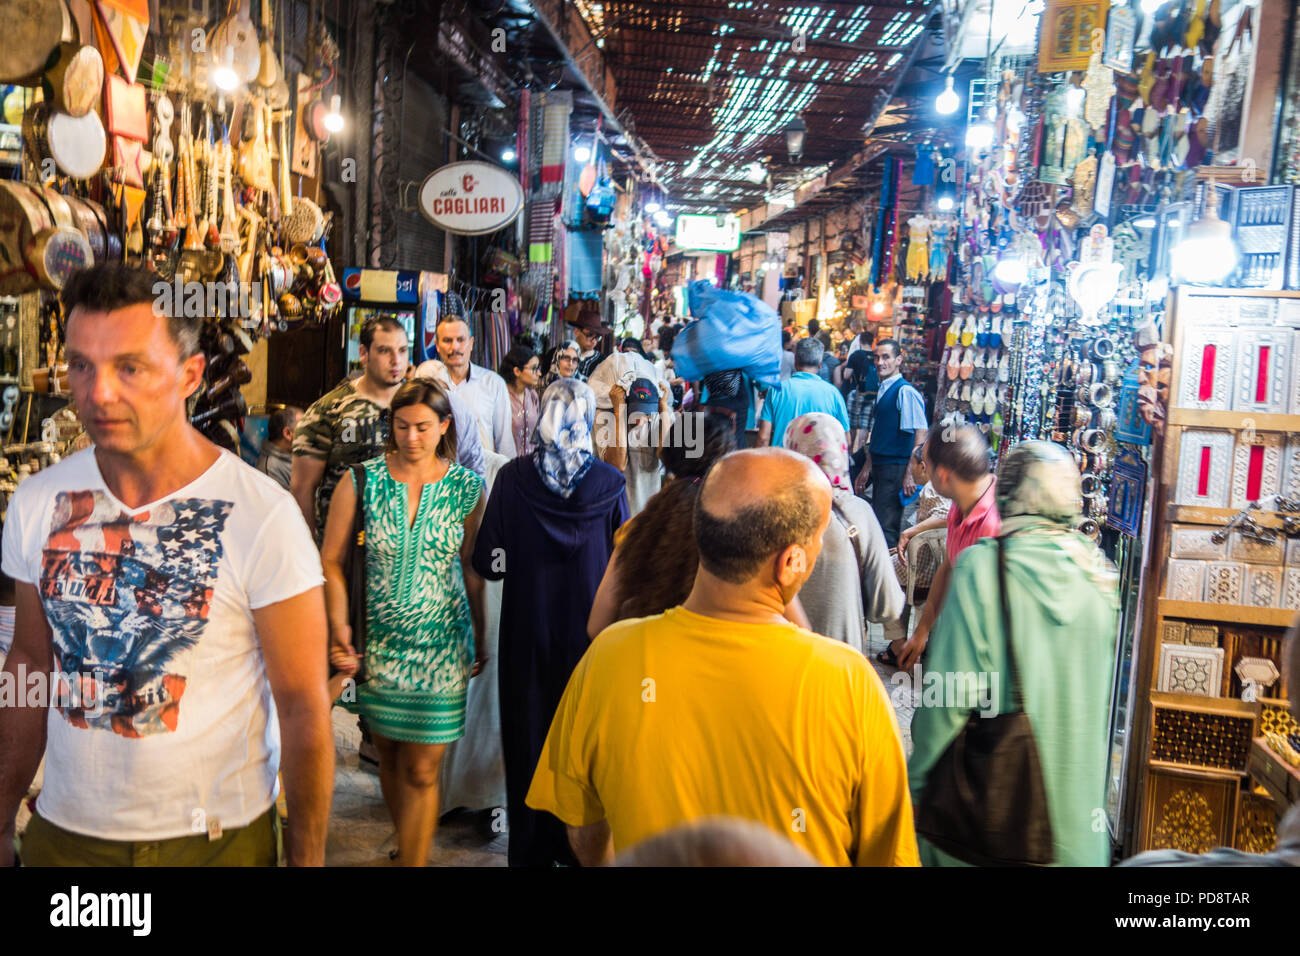 Marrakesh, Morocco - July 25th 2018 : view of a crowded craft market in medina Stock Photo